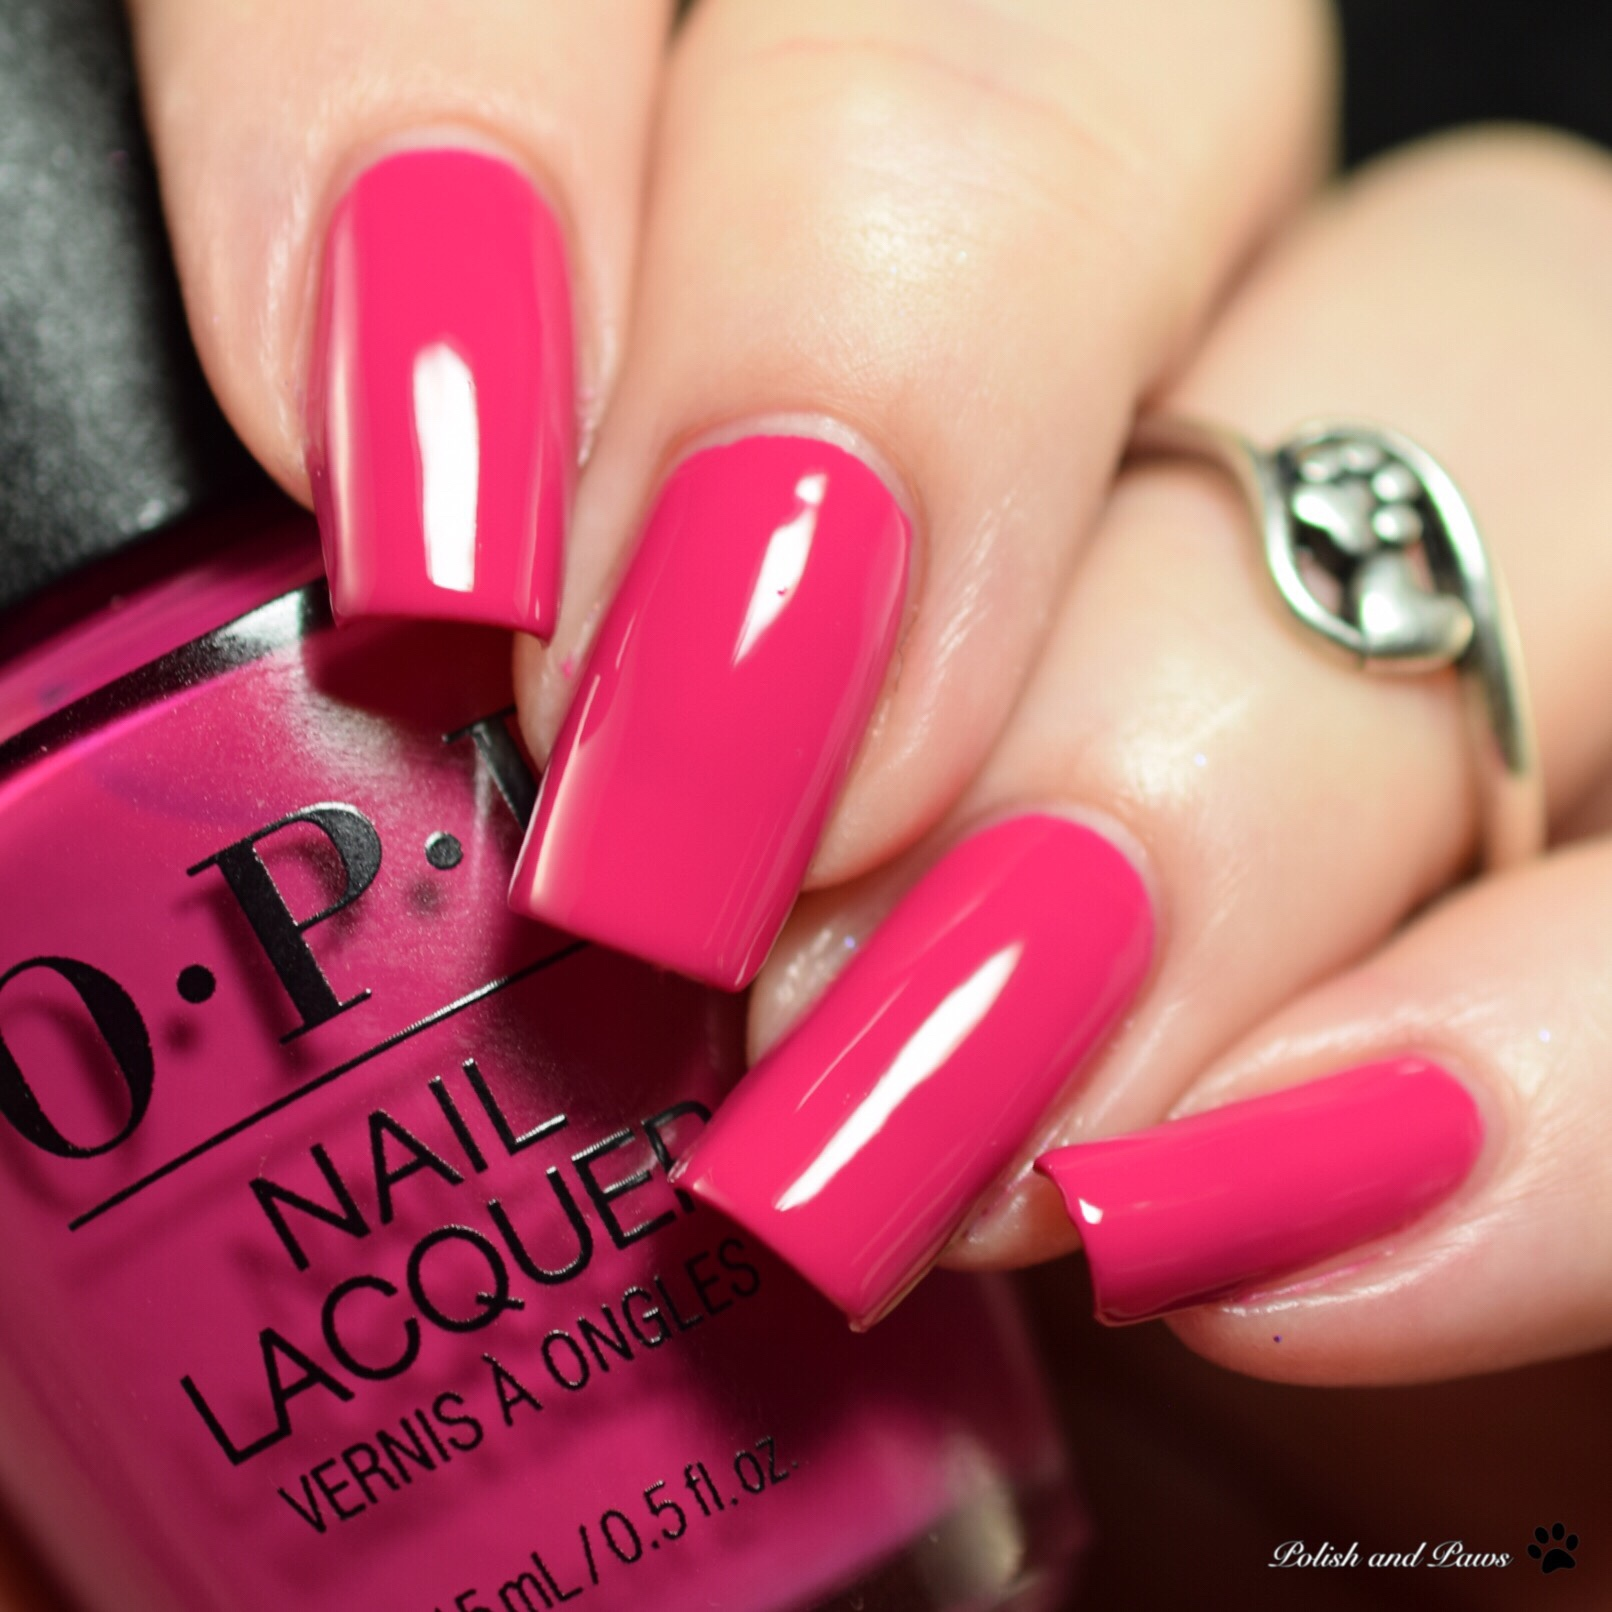 OPI You're the Shade that I Want